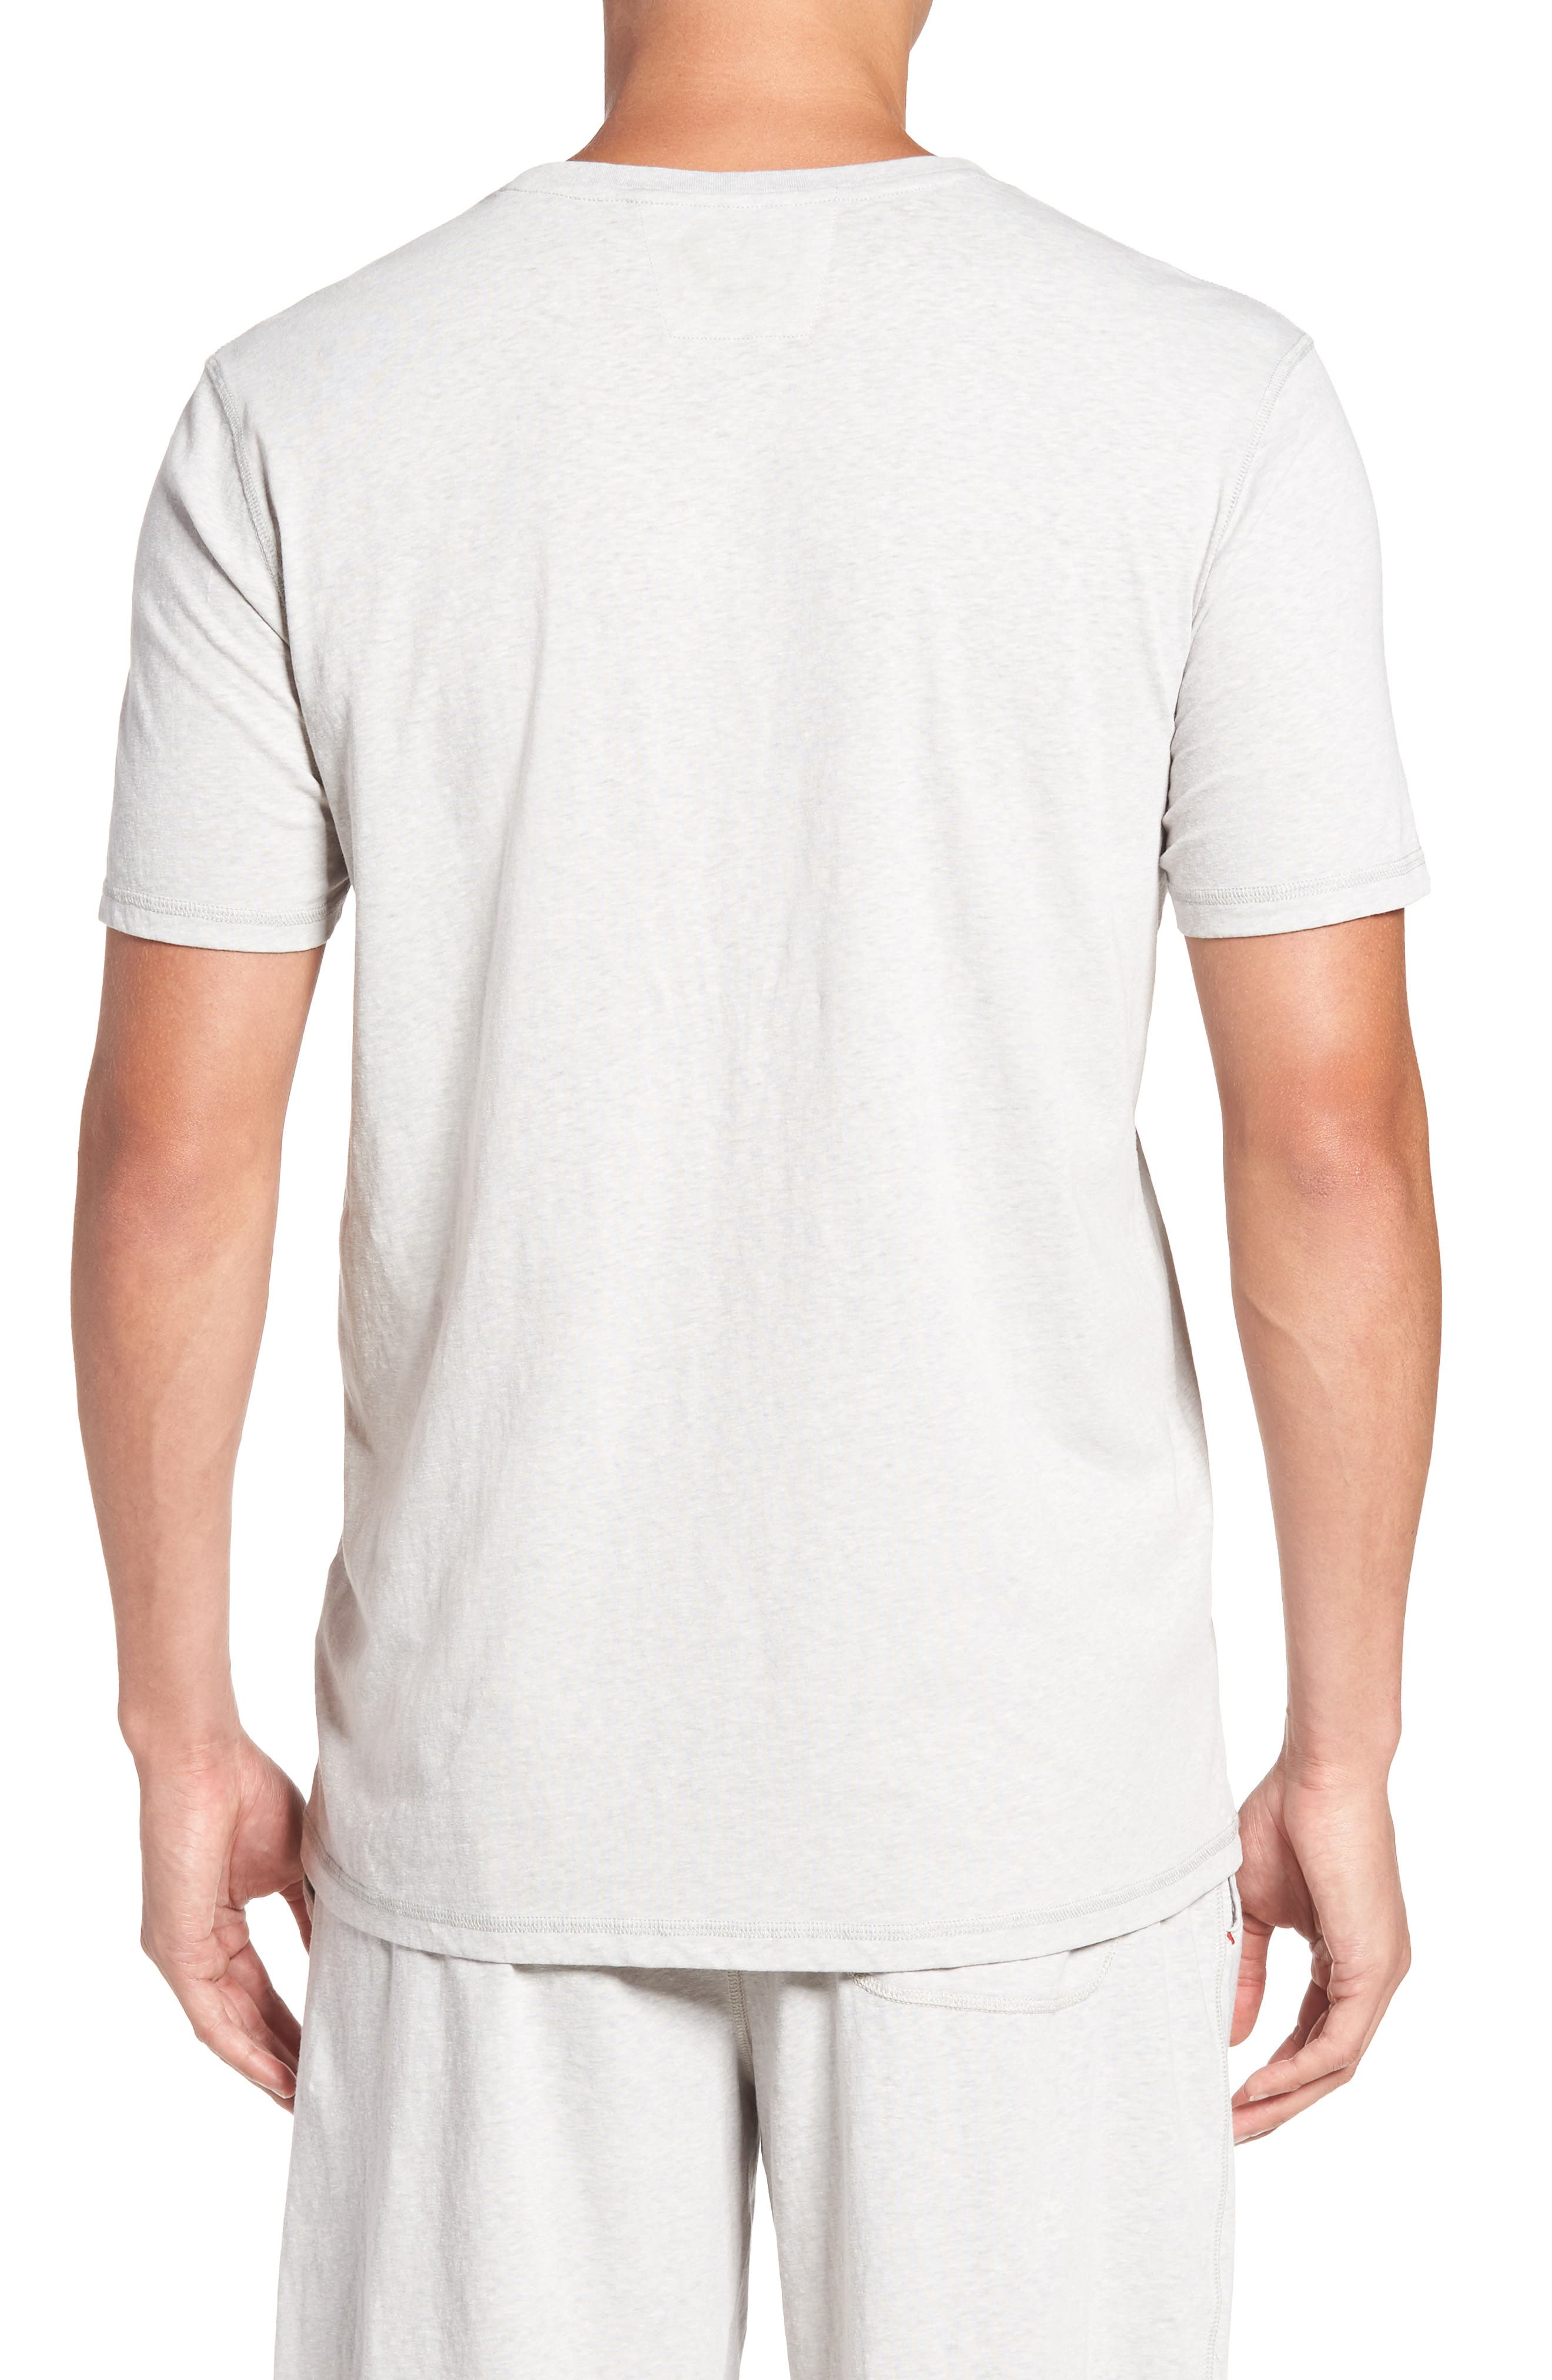 Recycled Cotton Blend T-Shirt,                             Alternate thumbnail 2, color,                             020